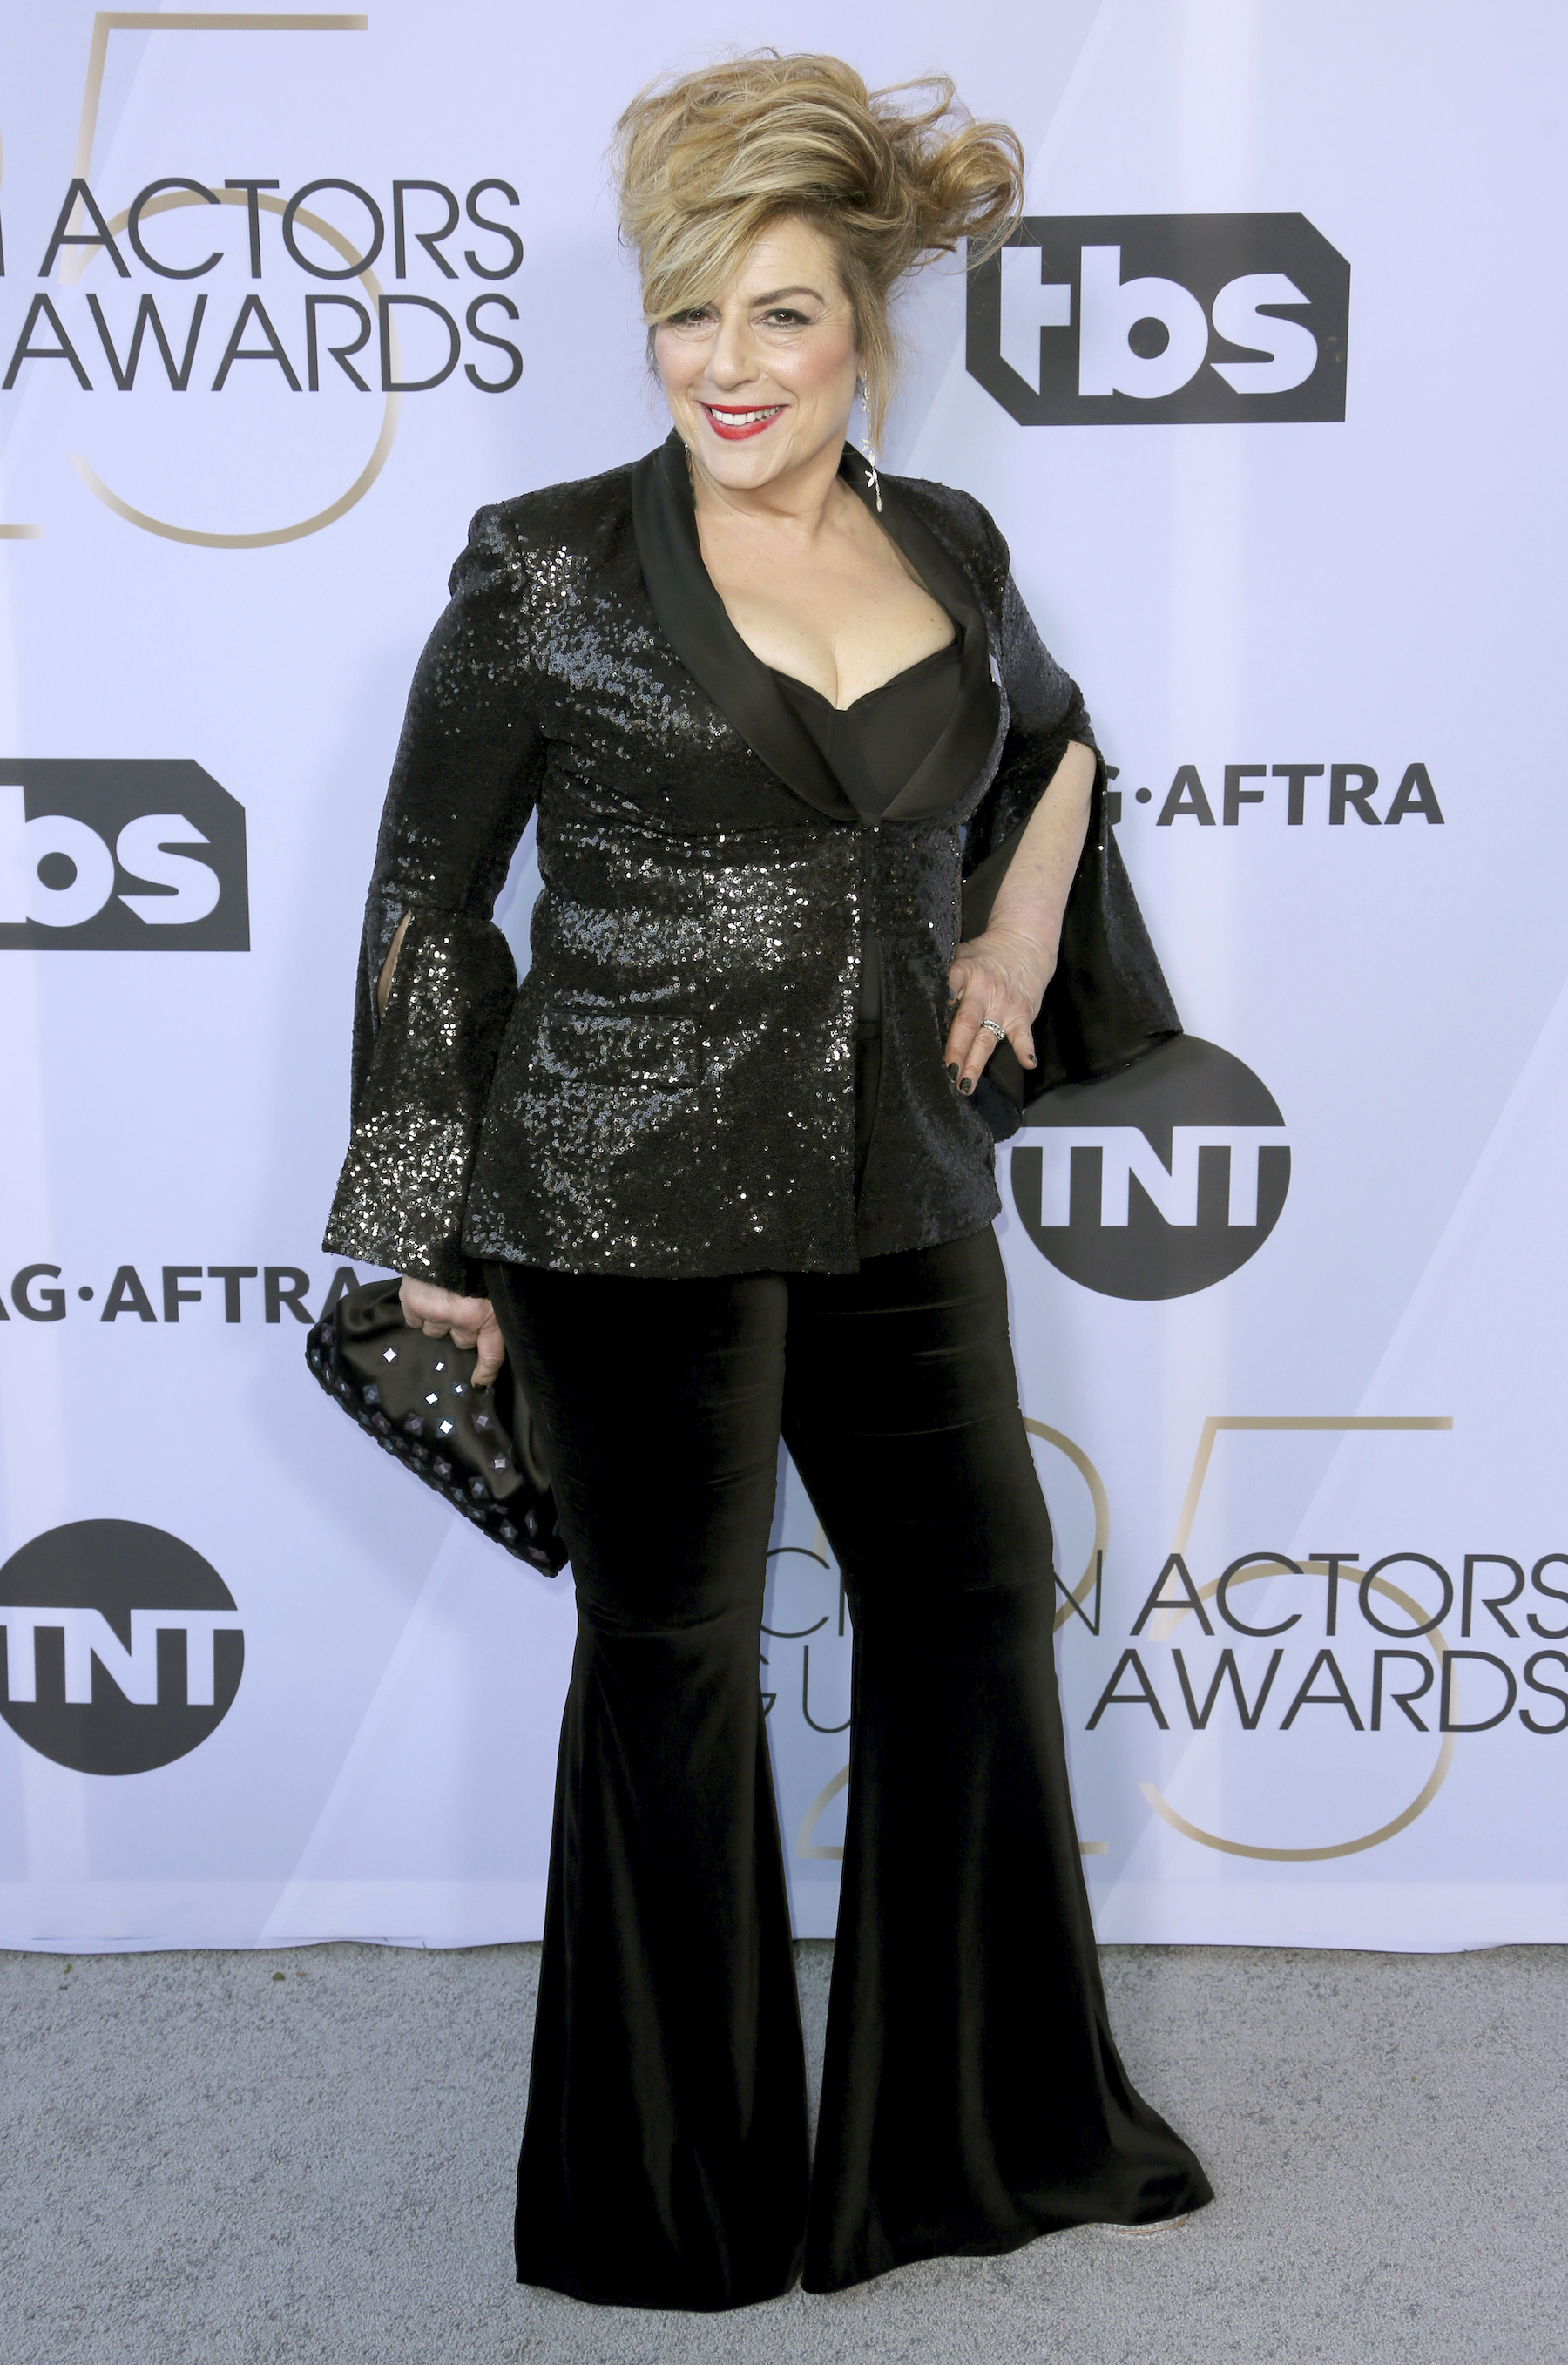 <div class='meta'><div class='origin-logo' data-origin='AP'></div><span class='caption-text' data-credit='Willy Sanjuan/Invision/AP'>Caroline Aaron arrives at the 25th annual Screen Actors Guild Awards at the Shrine Auditorium & Expo Hall on Sunday, Jan. 27, 2019, in Los Angeles.</span></div>